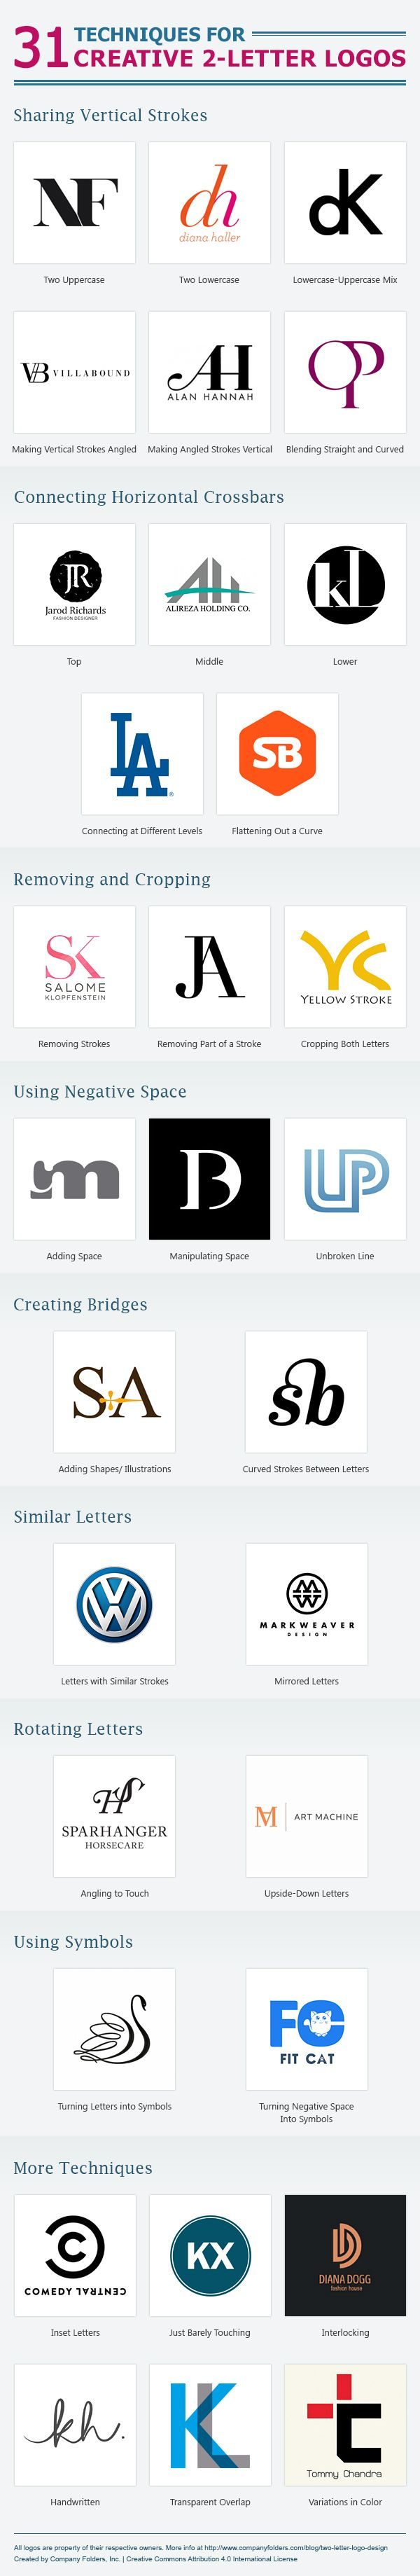 Got A 2 Letter Business Name 31 Ways To Make Your Logo More Creative